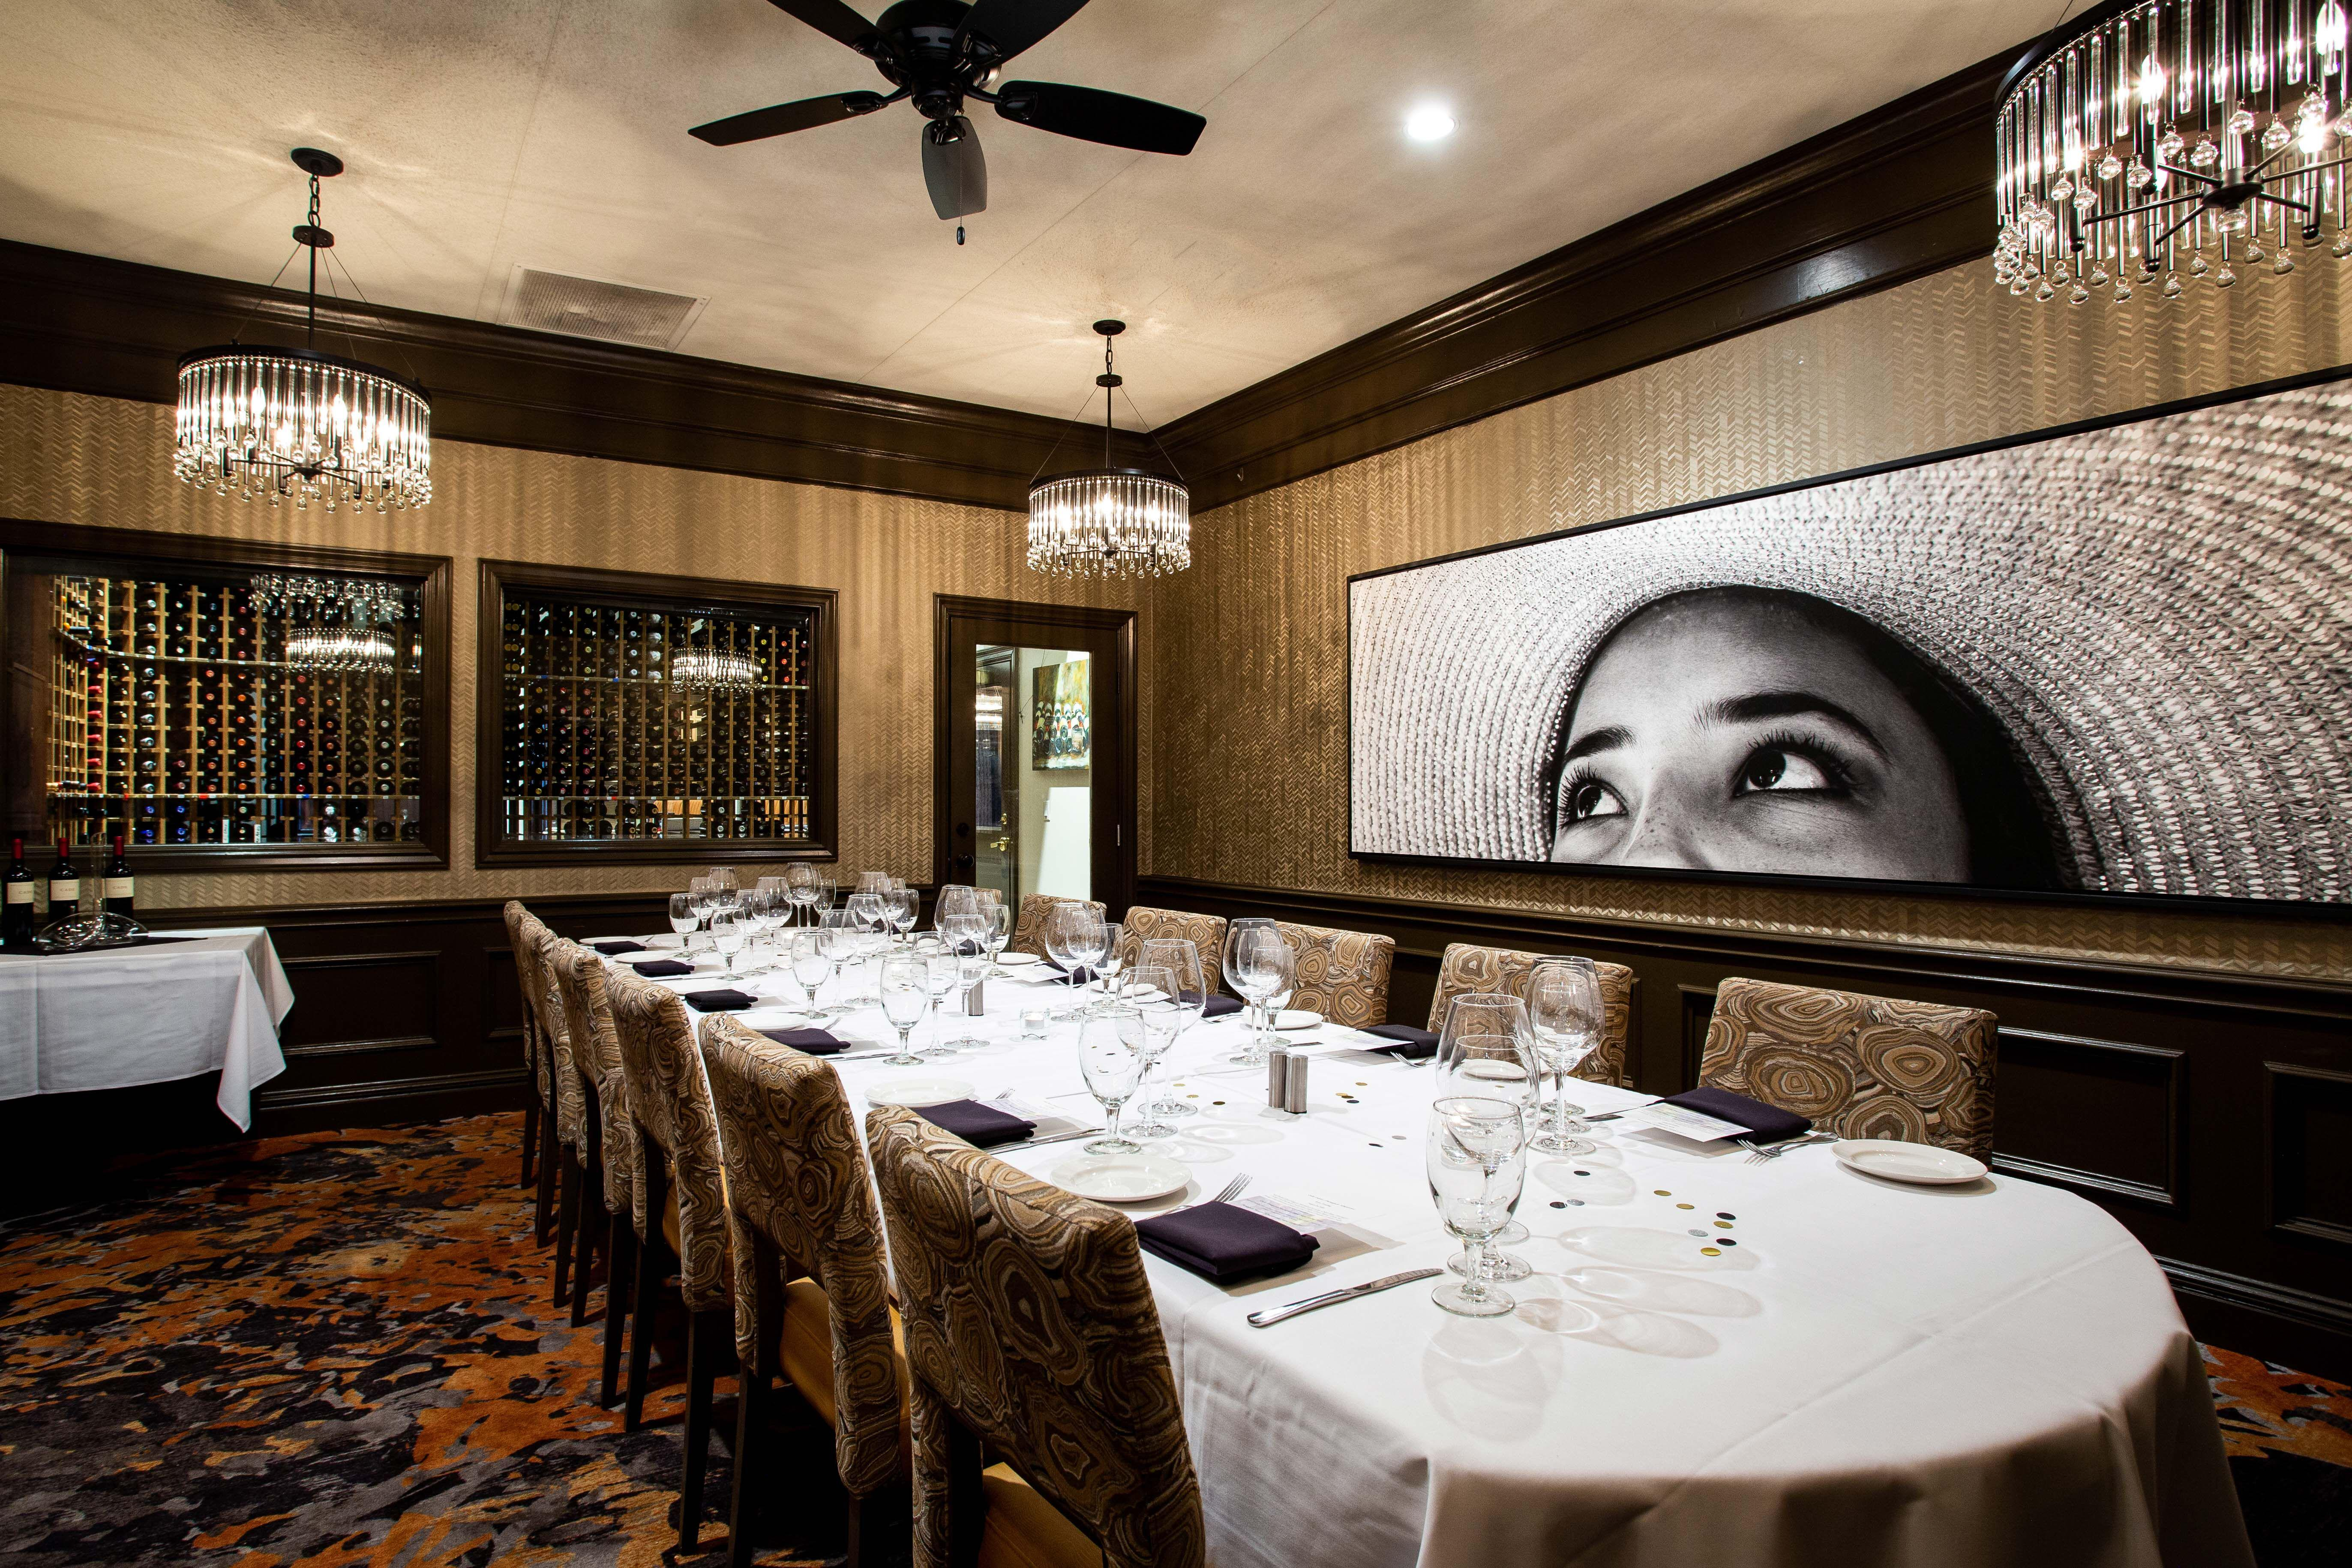 Del Frisco's Double Eagle Steakhouse Denver Wine Room private dining room